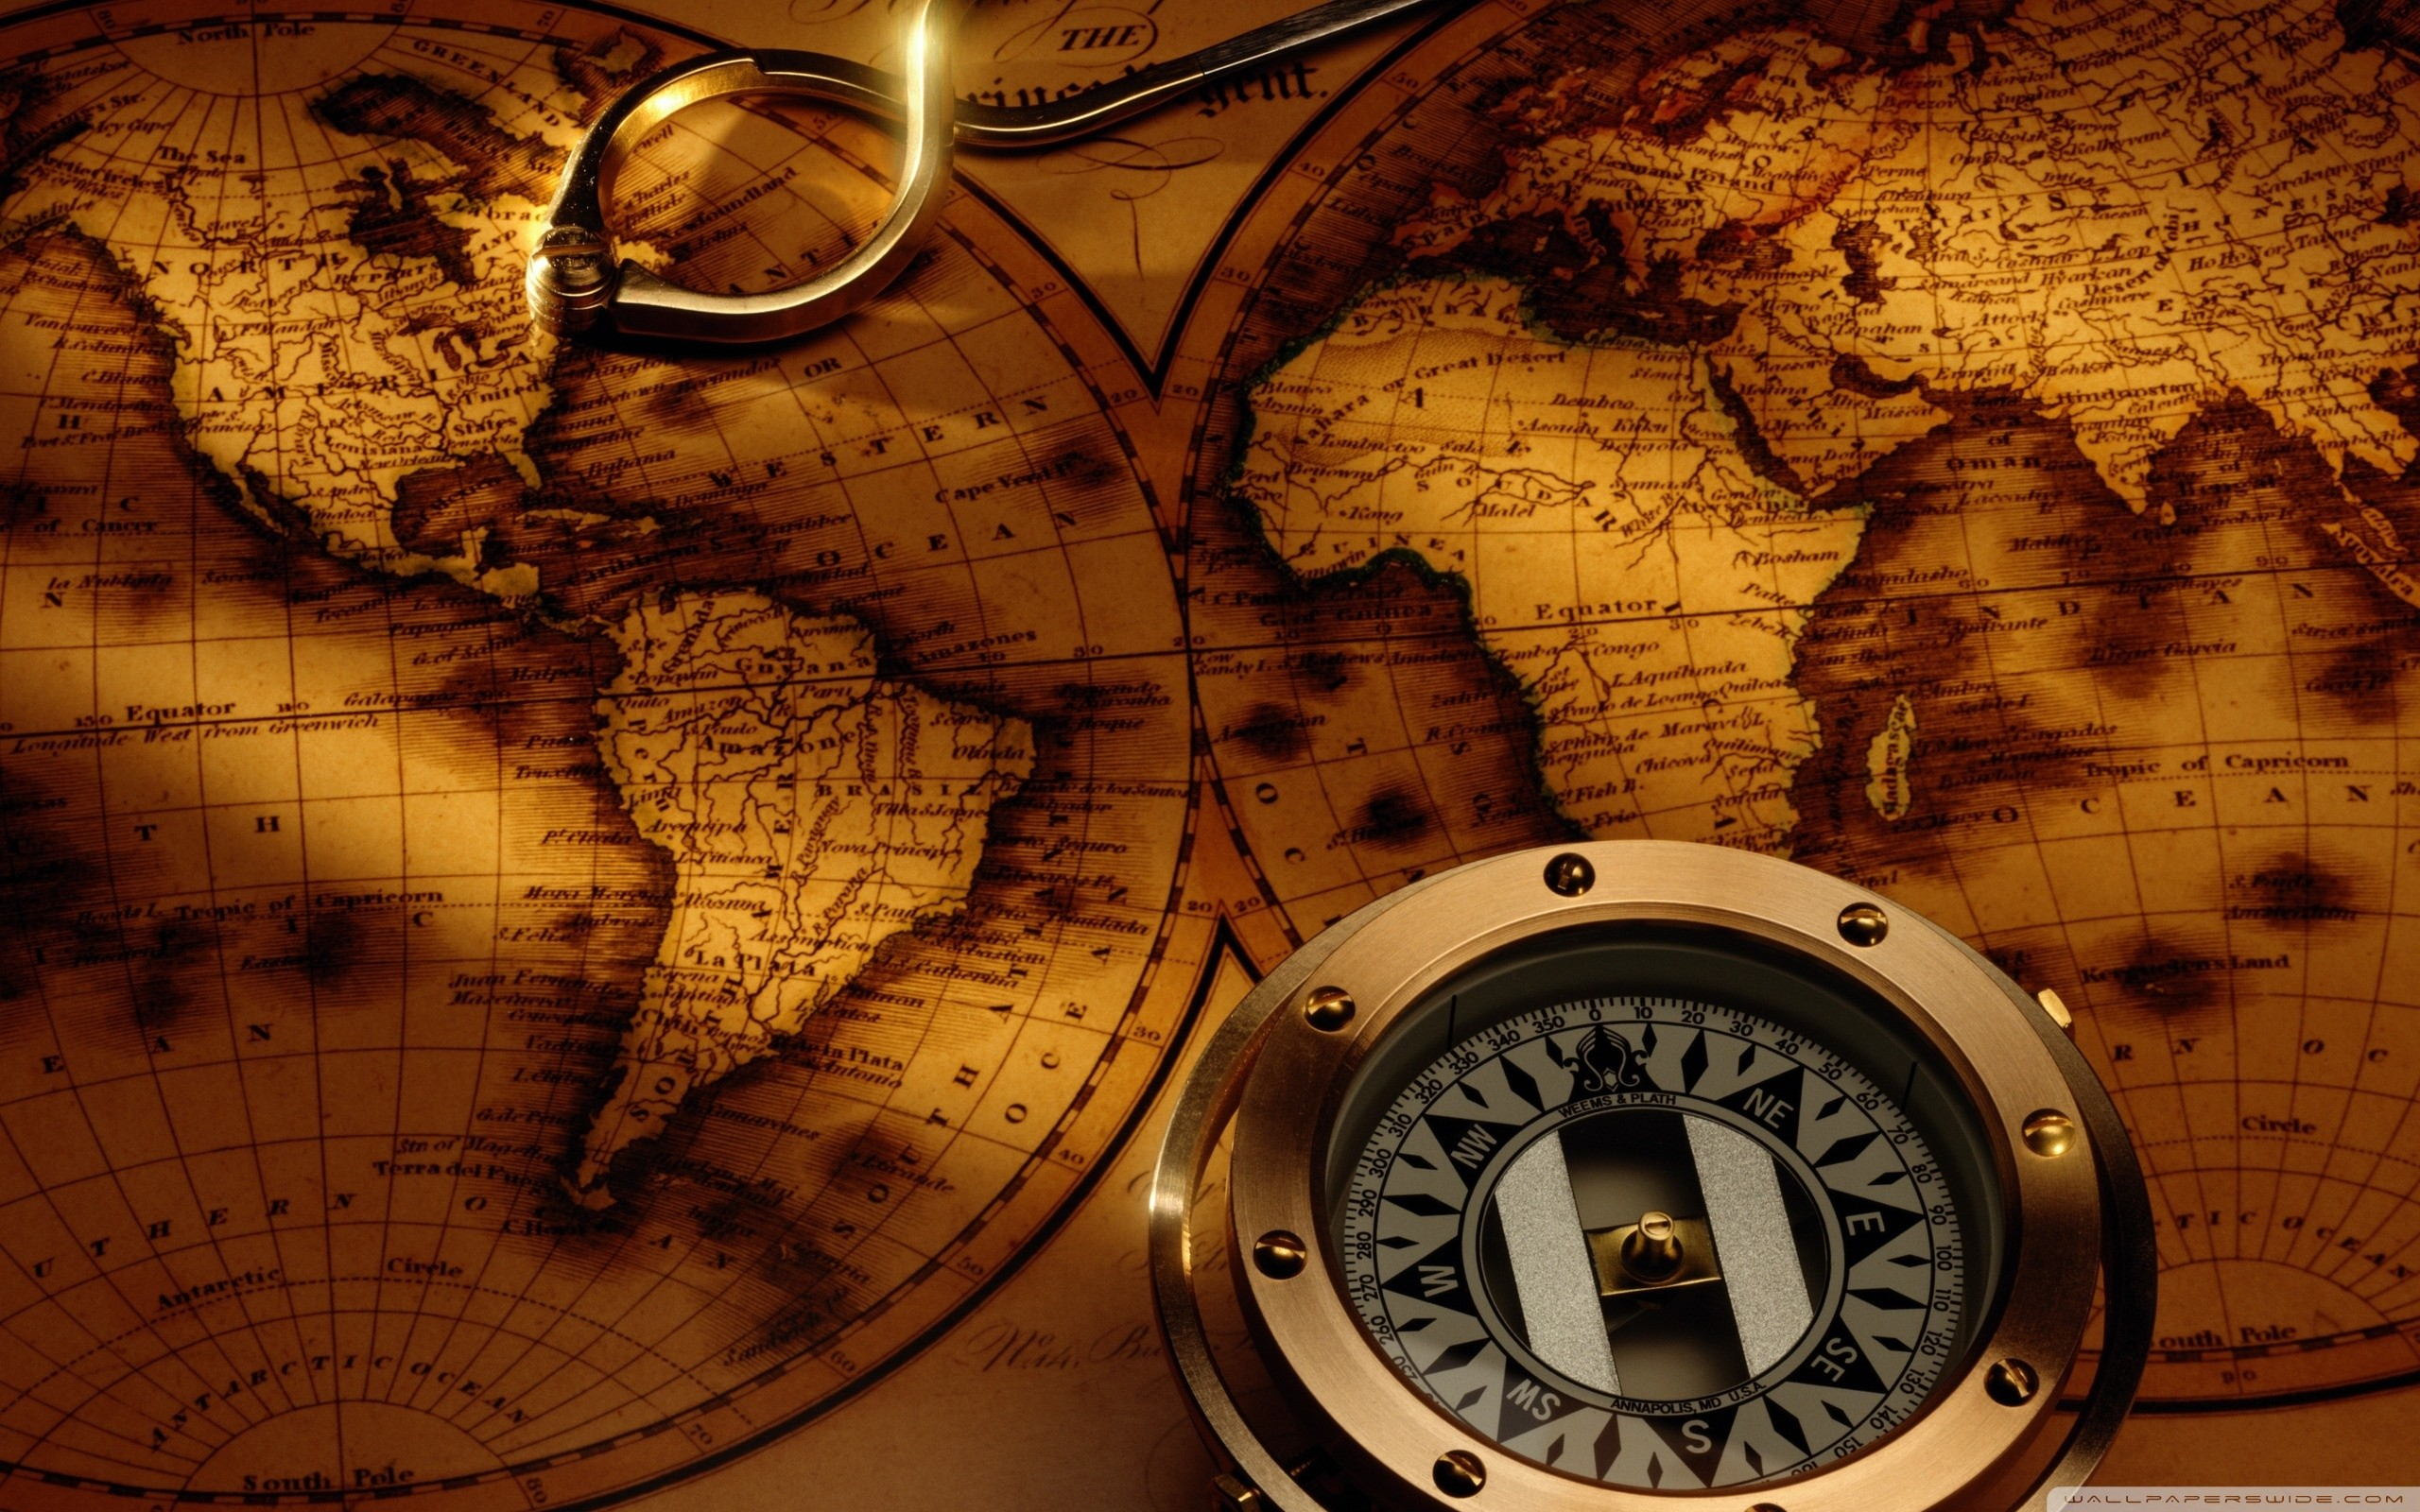 World map wallpapers 66 background pictures 2500x1694 world map wallpaper for windows 10 new free antique map background hd wallpapers background photos best vintage world map wallpaper hd new world publicscrutiny Gallery